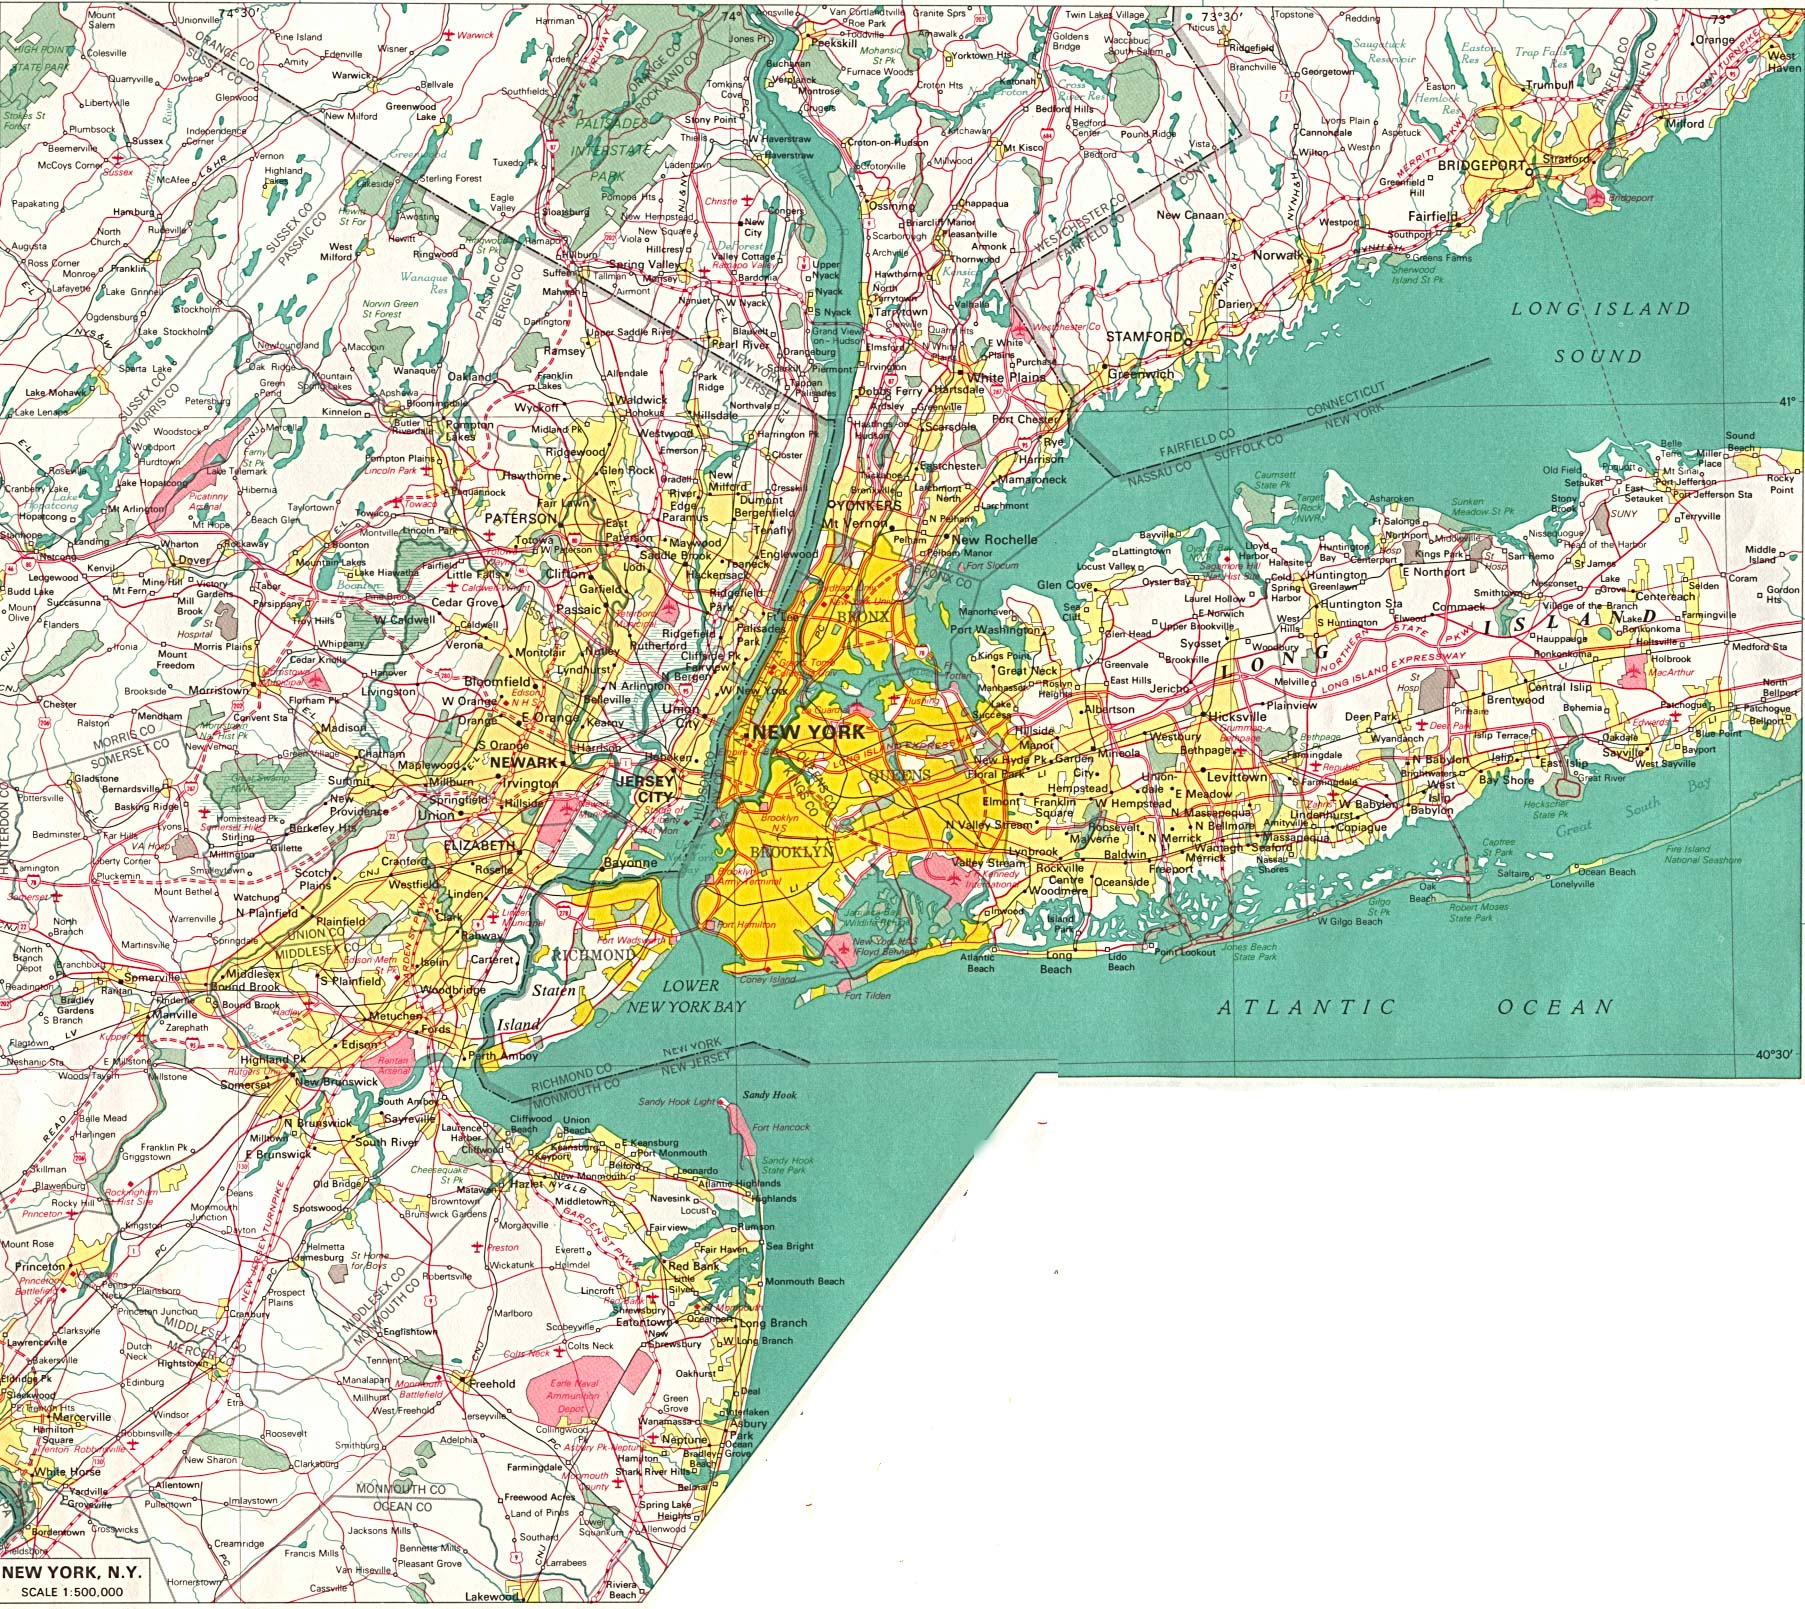 StateMaster - Maps of New York (71 in total)